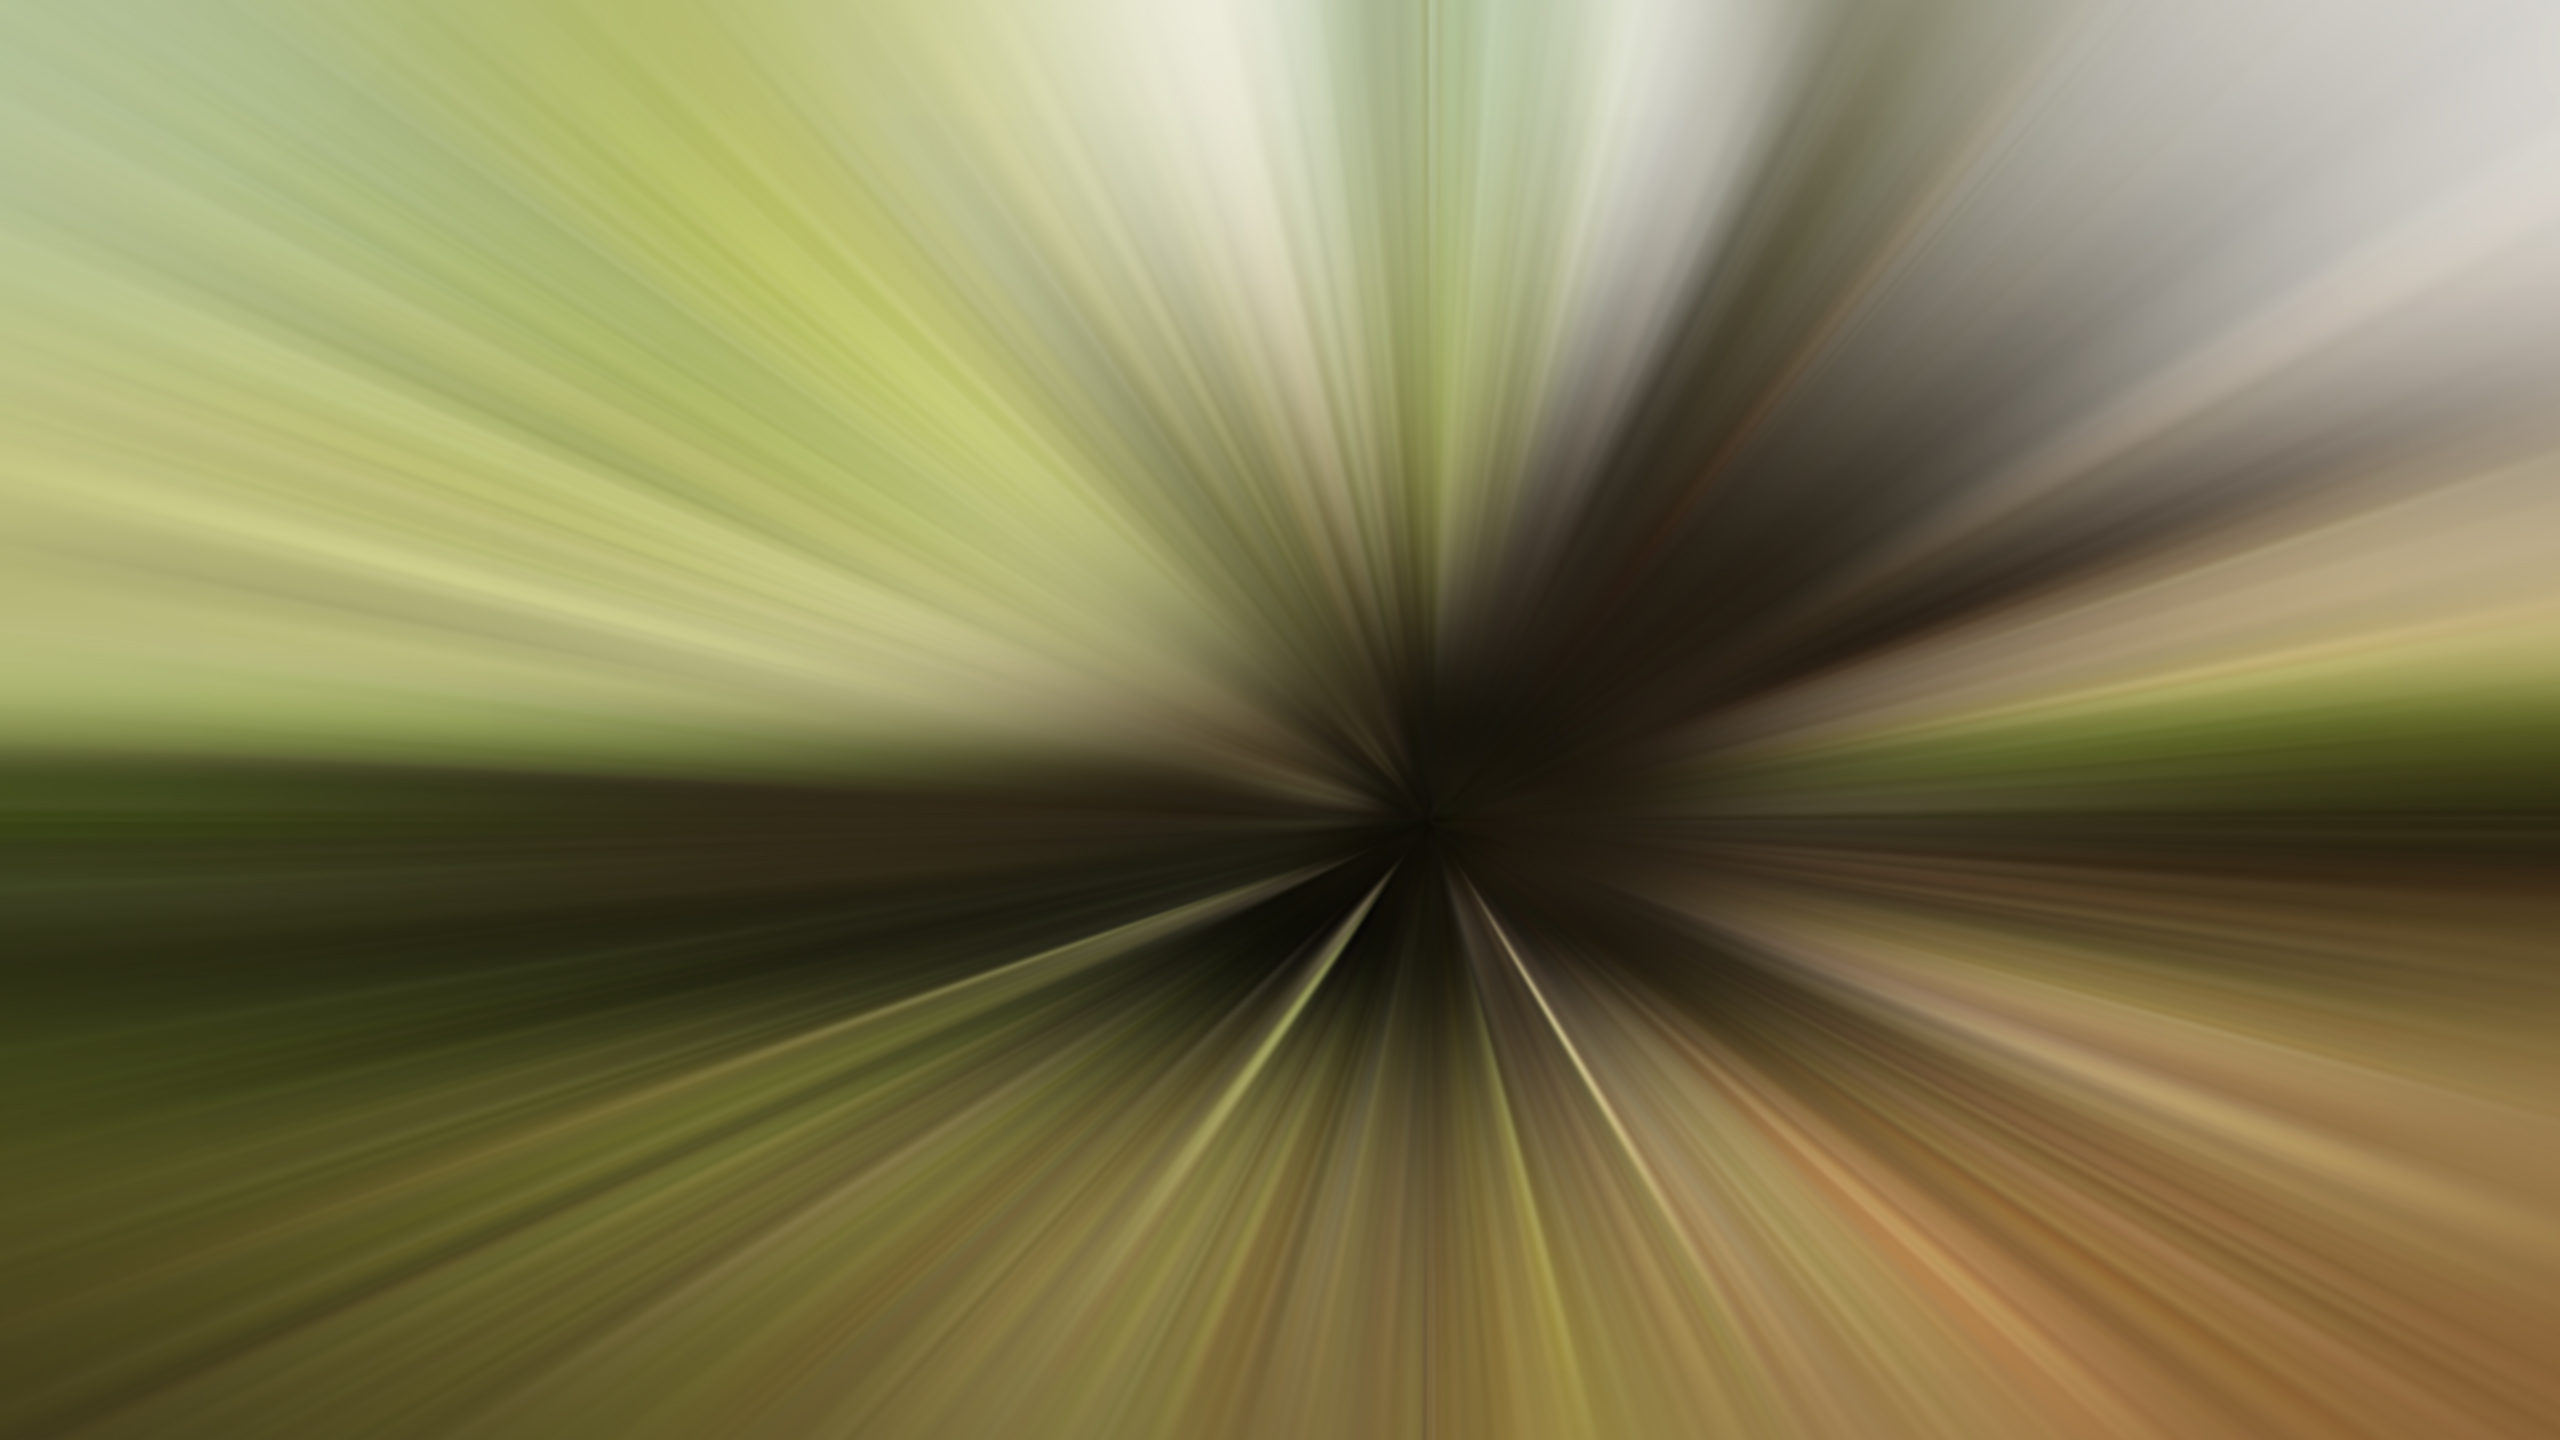 Radial Zoom Blur Abstract Wallpaper Nelsdrums